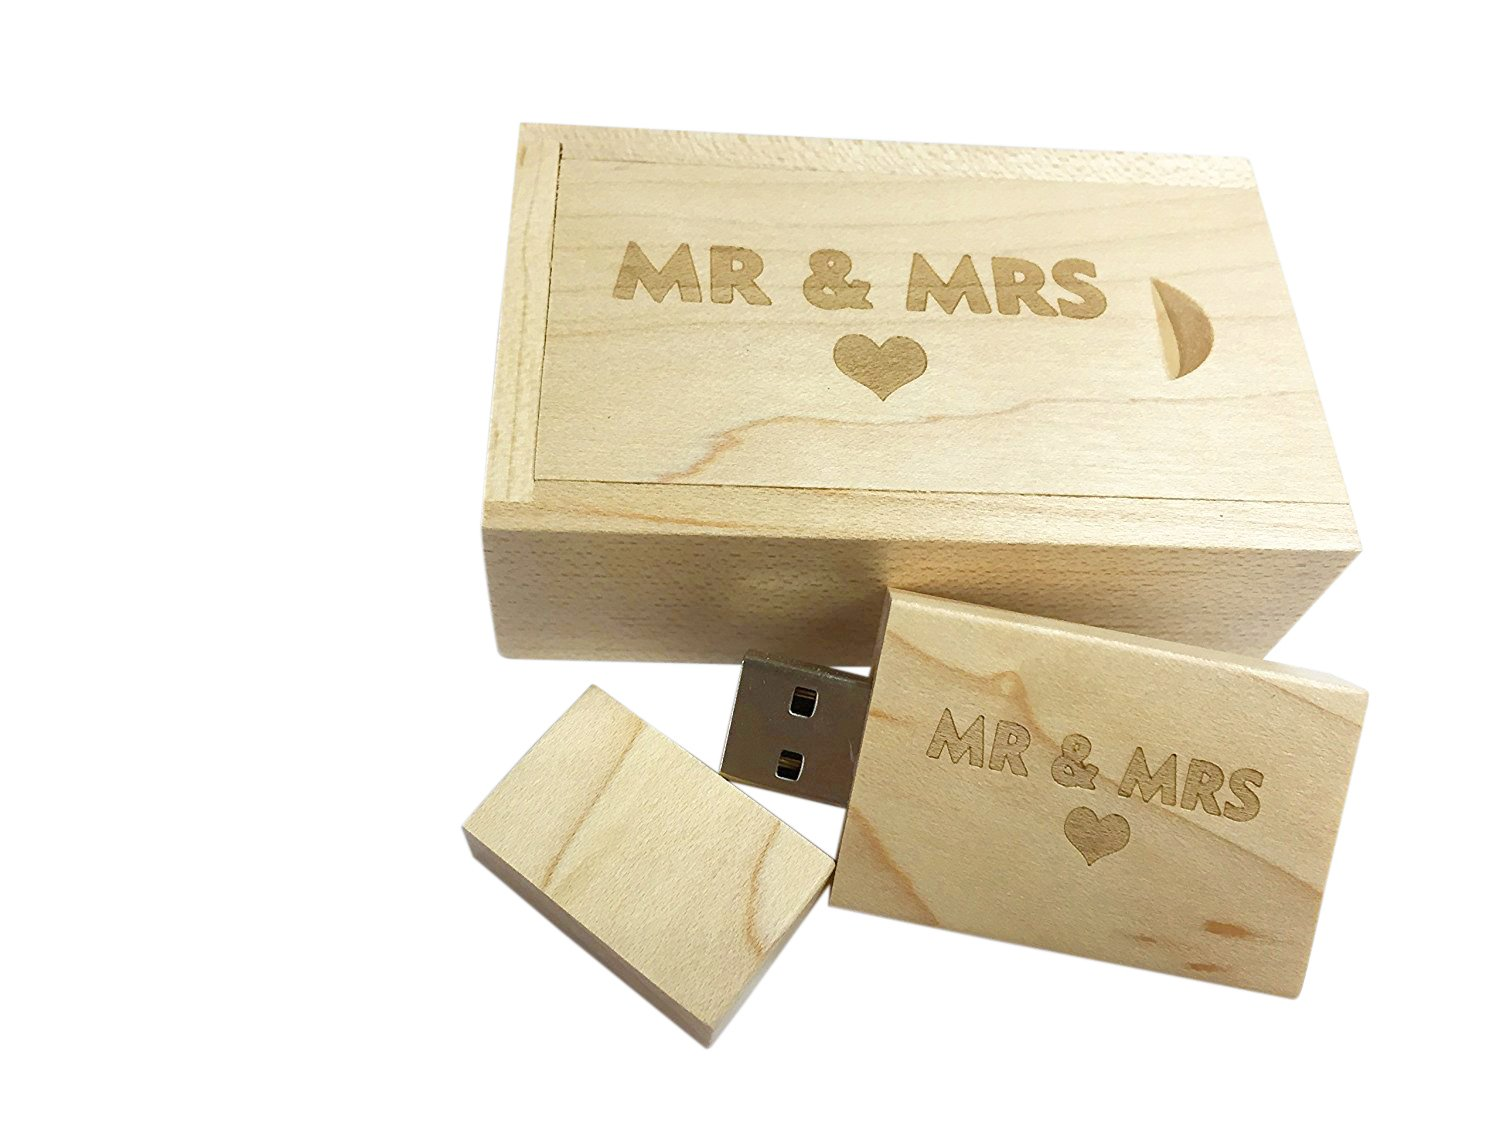 Dodjivi Maple Wood USB Flash Drive with Laser Engraved 'Mr & Mrs' Design – 16GB Wood USB 2.0 Flash Drive Memory Stick Pen Drive with Cute Sliding Door Wood Box – Perfect Wedding Gift for Bride, Groom 4328521082